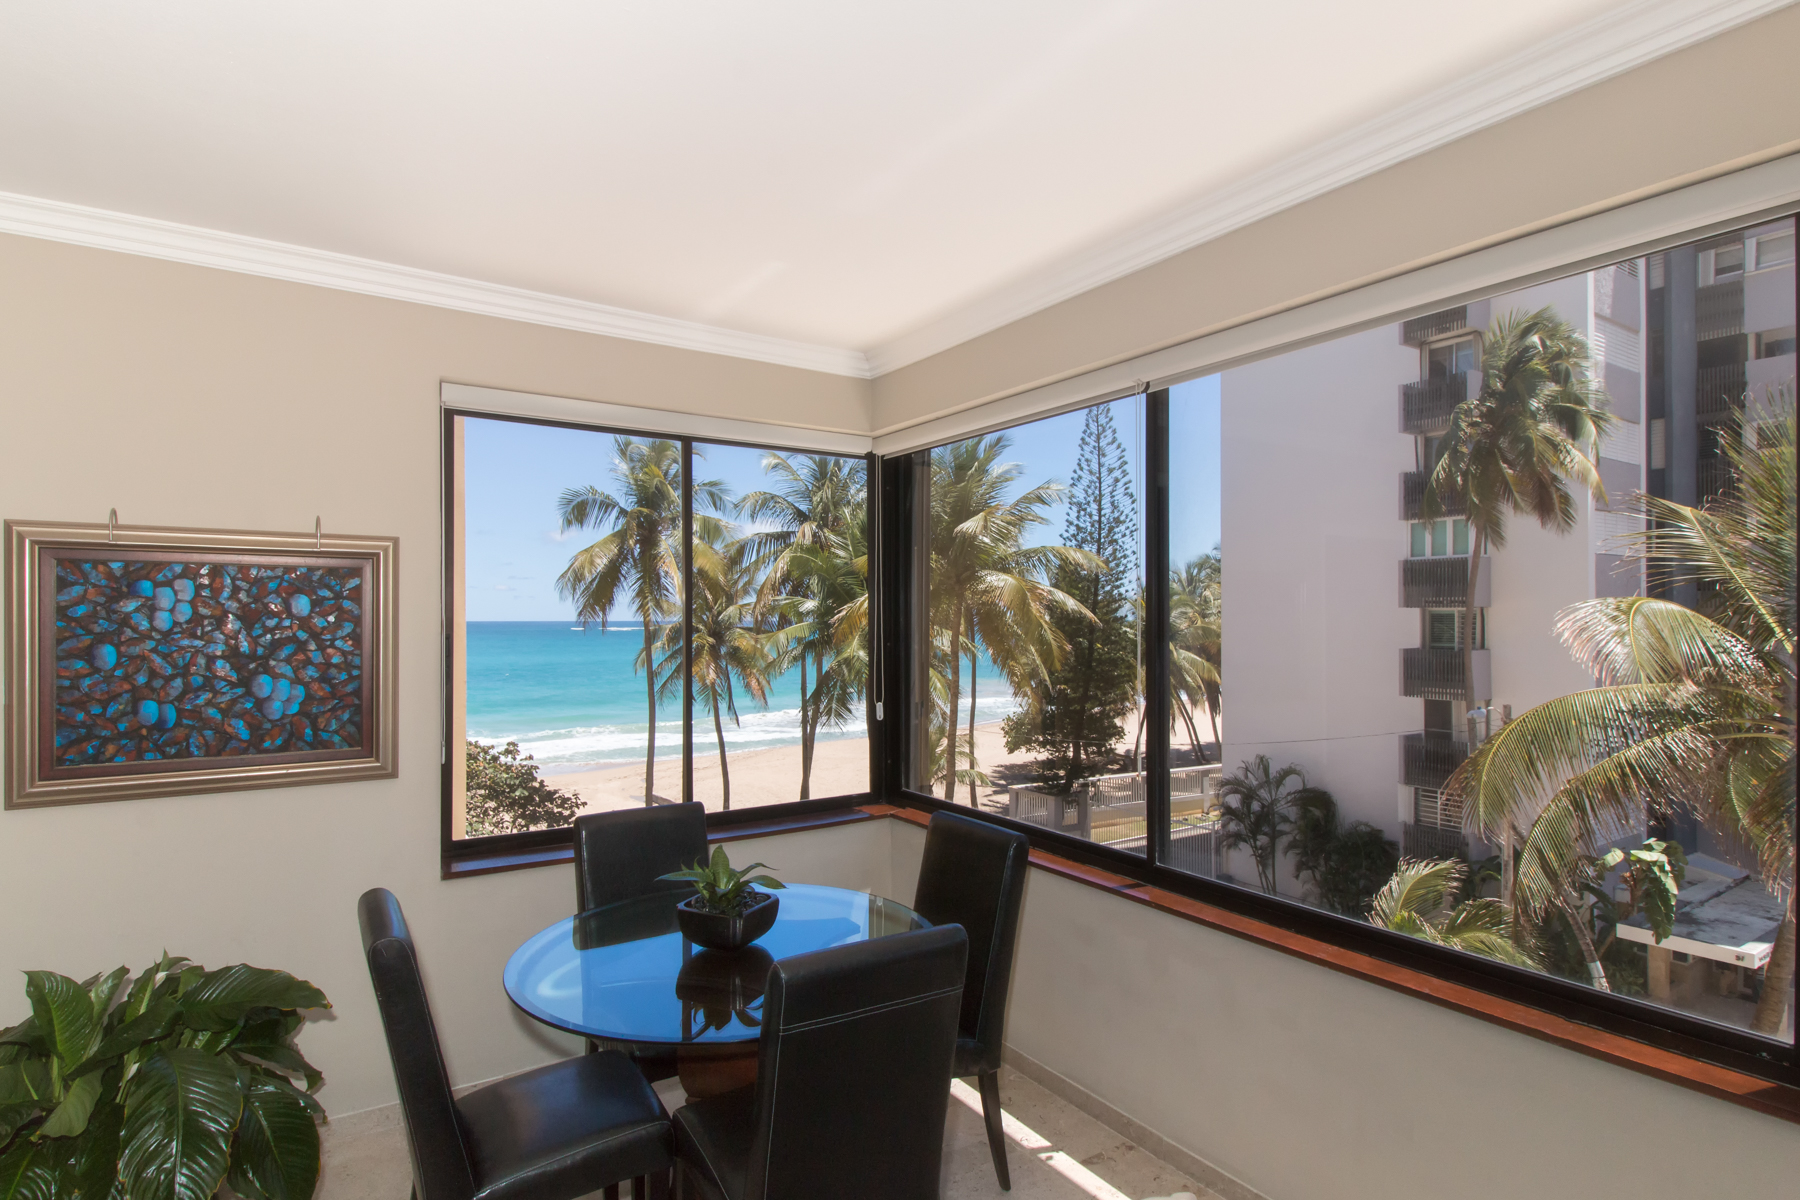 Additional photo for property listing at Beachfront on Kings Court 52 Kings Court Apt, 3A San Juan, Puerto Rico 00911 Puerto Rico